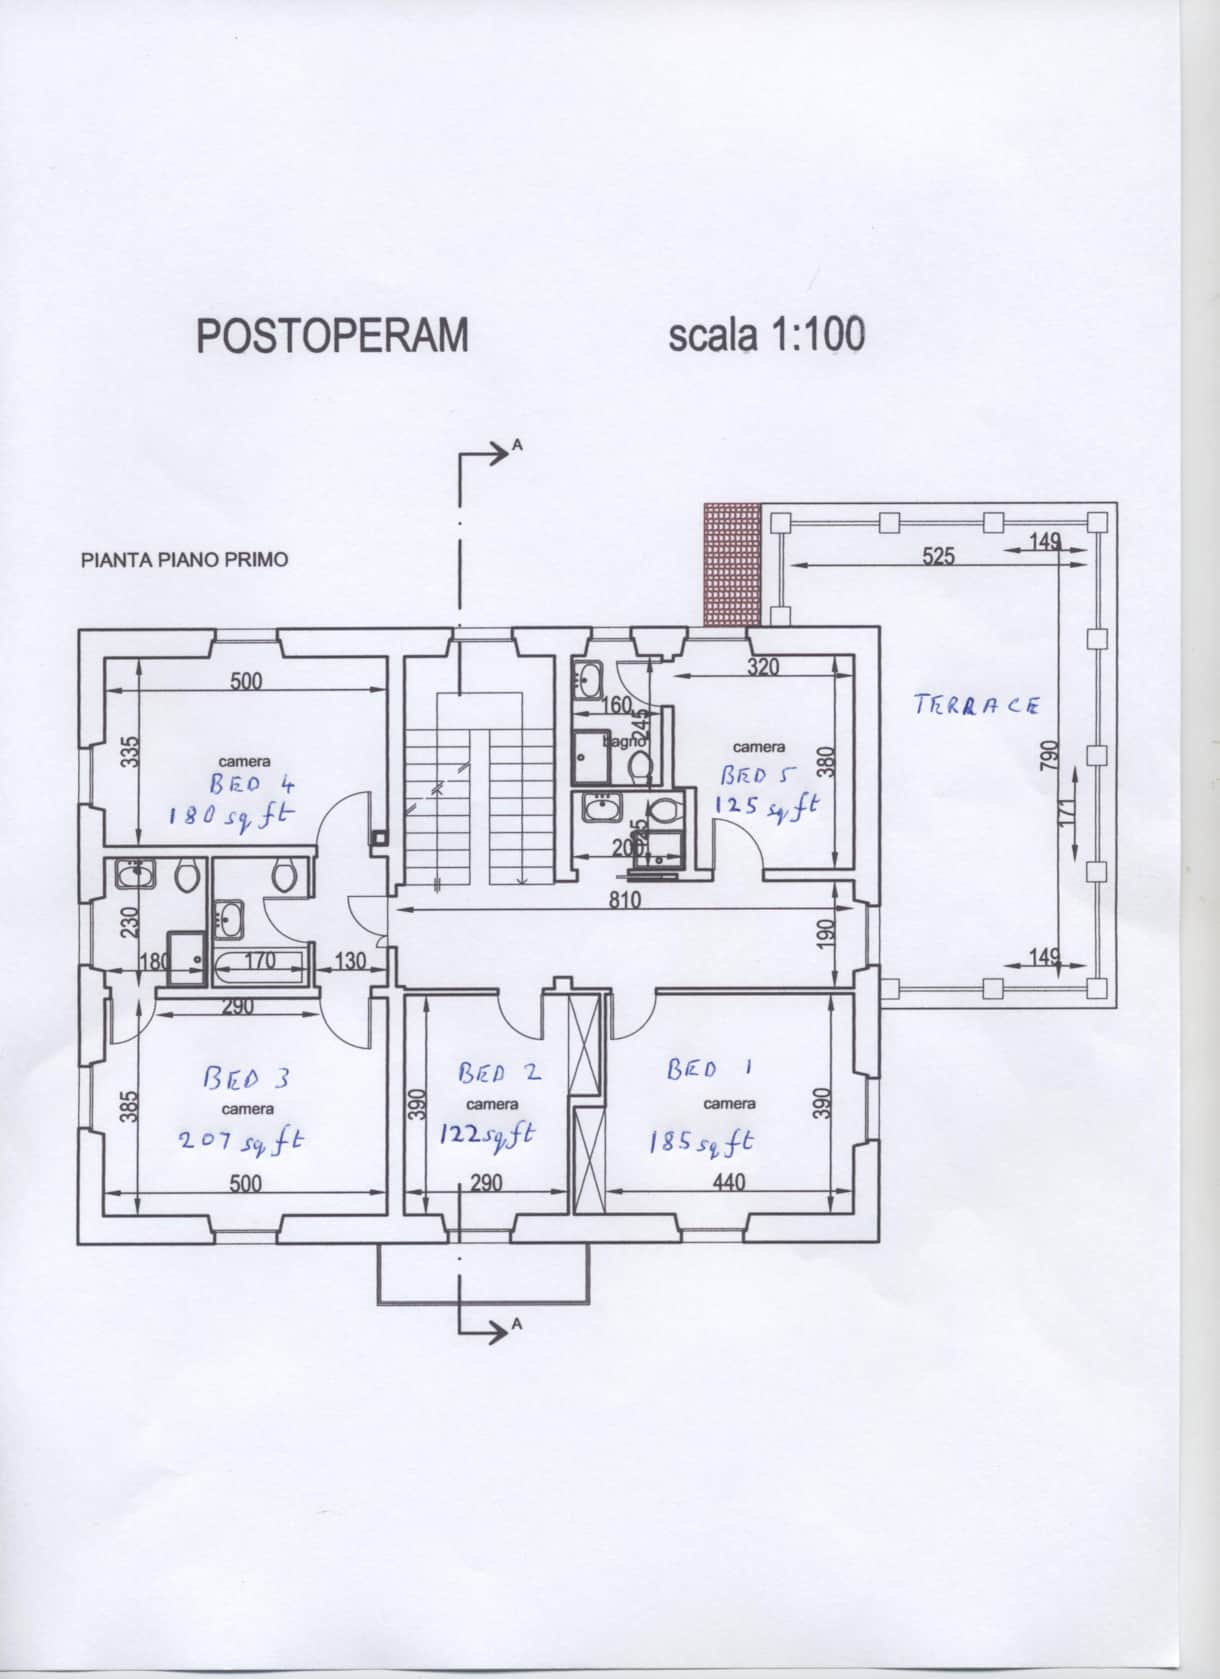 The bedroom and bathroom plan of this beautifully appointed and very well equipped Tuscan villa.